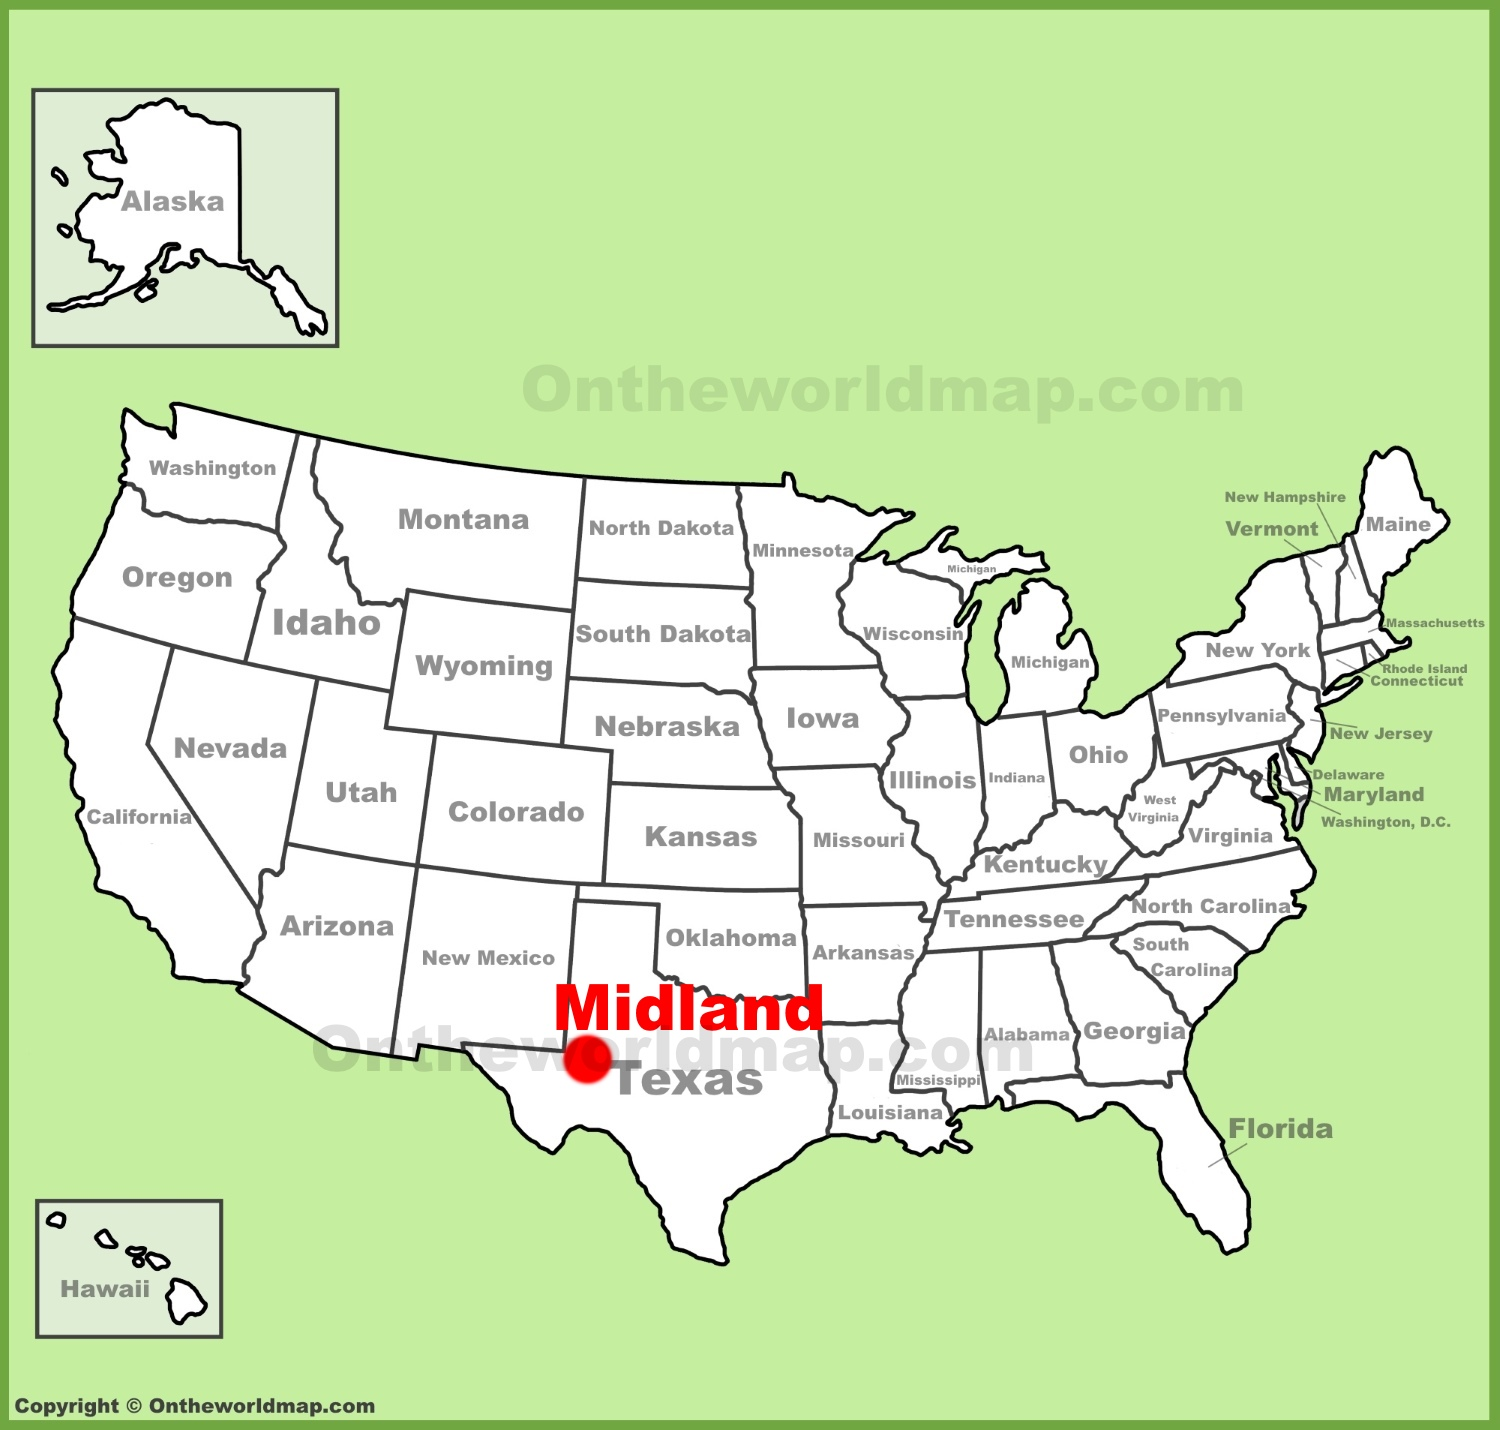 Map Of Midlands Midland location on the U.S. Map